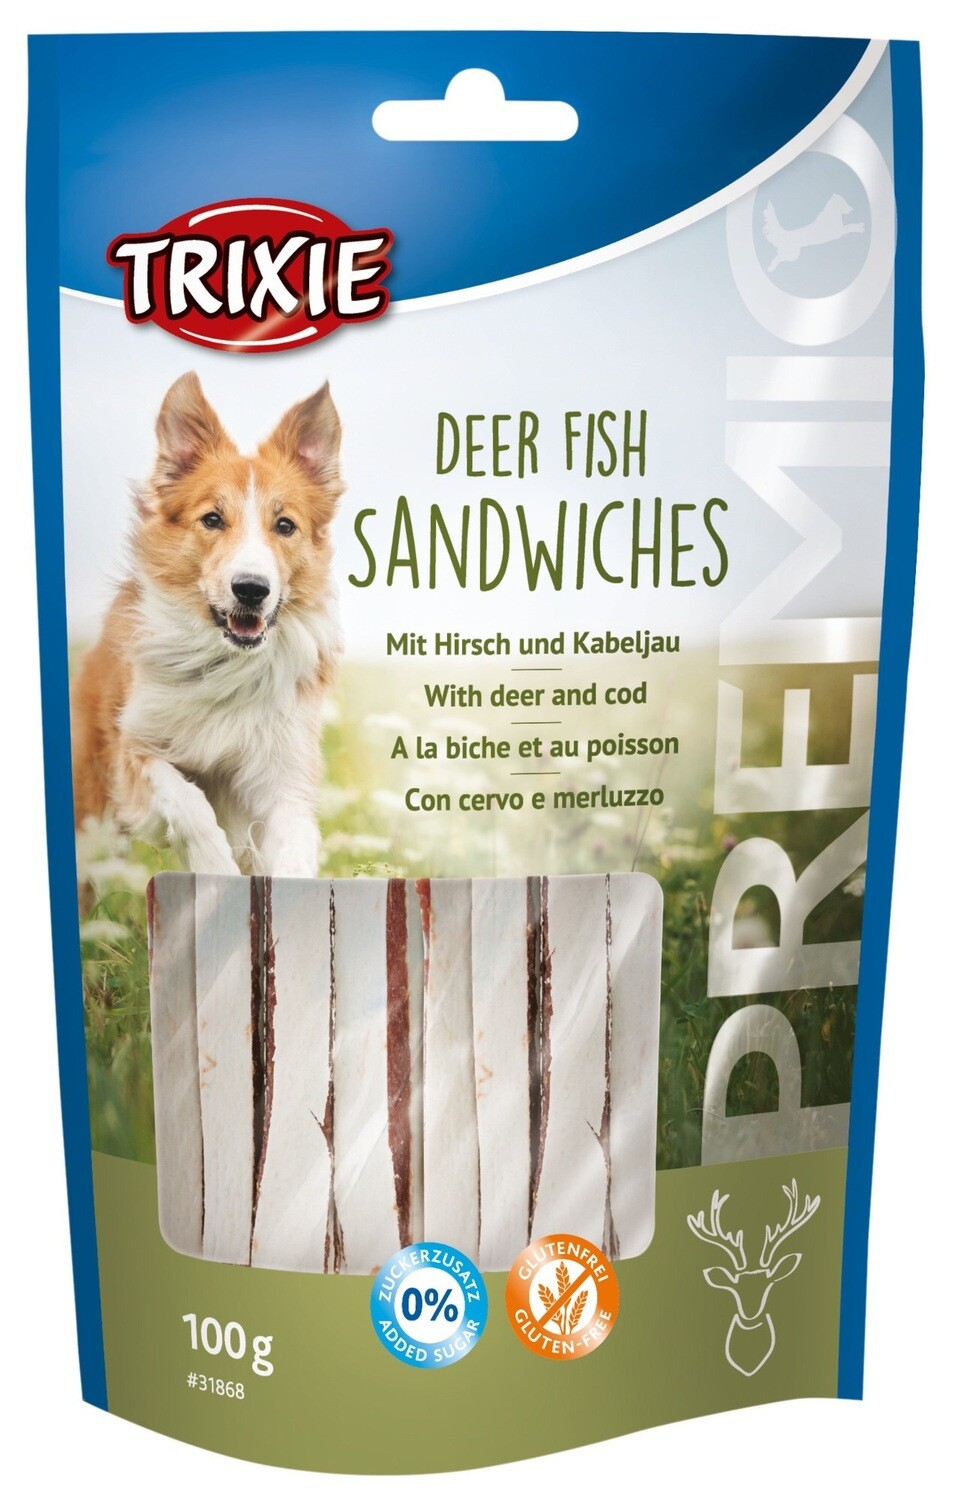 Deer fish sandwiches